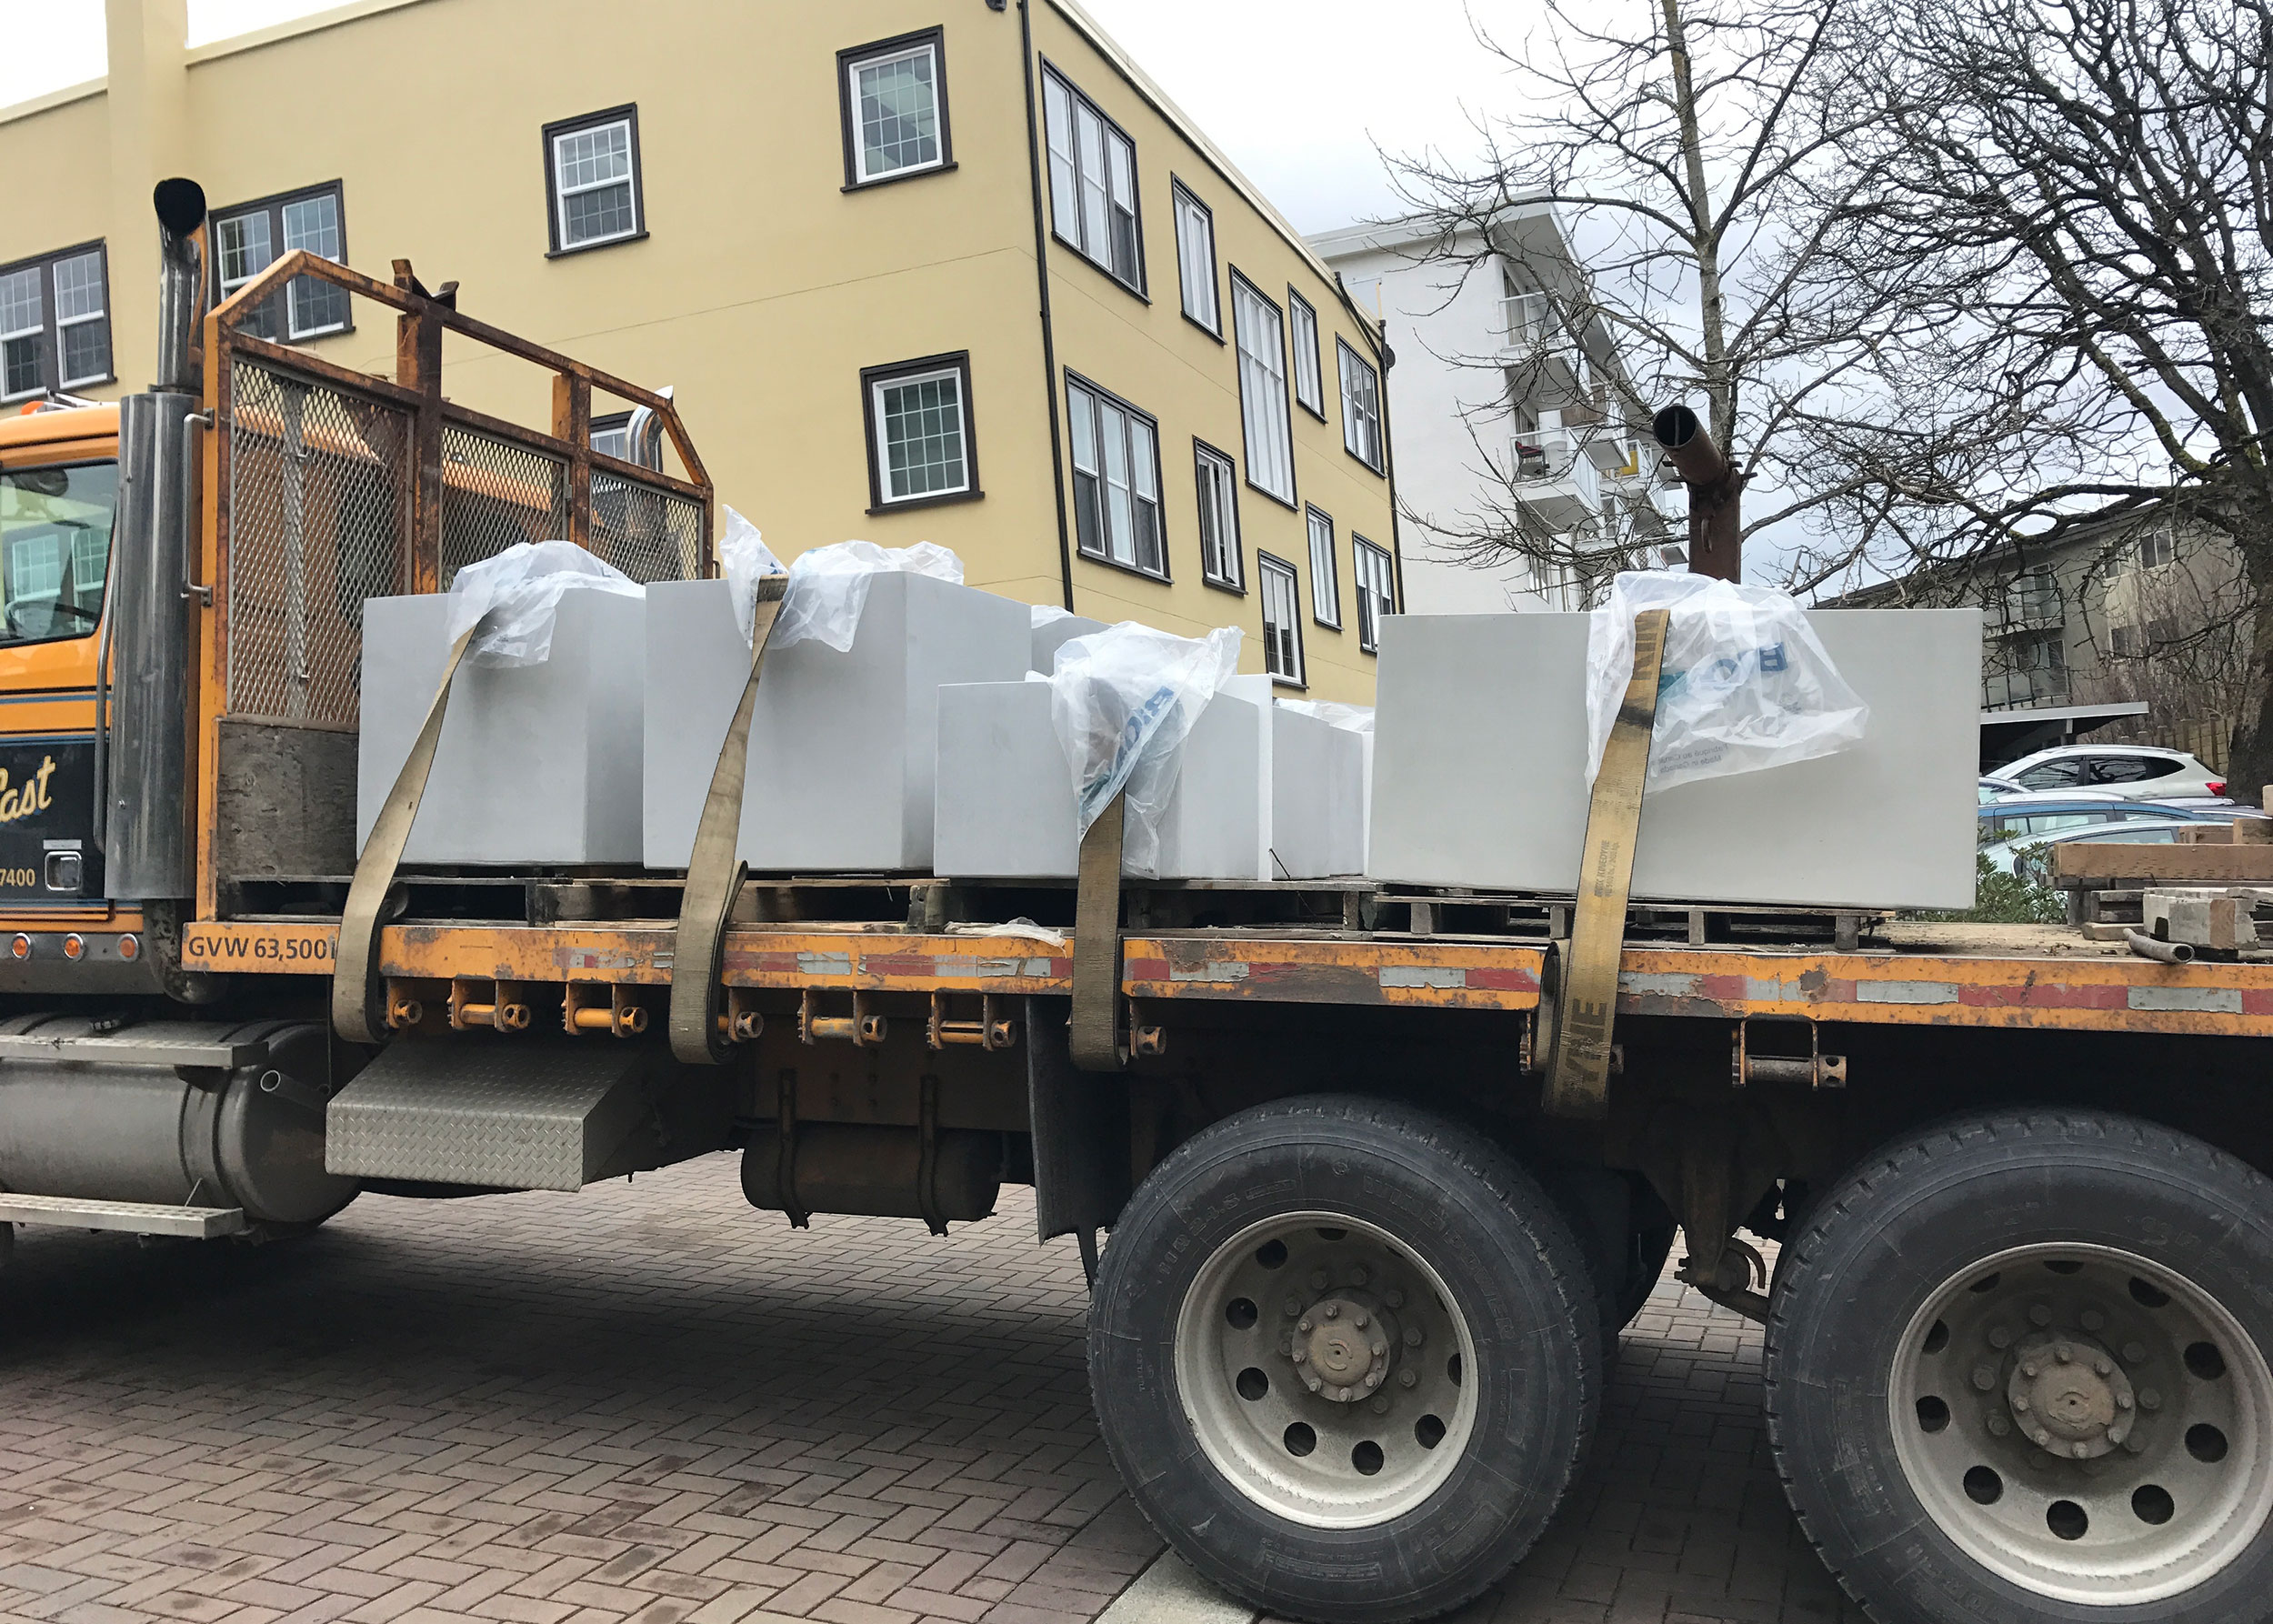 ductal planters on truck